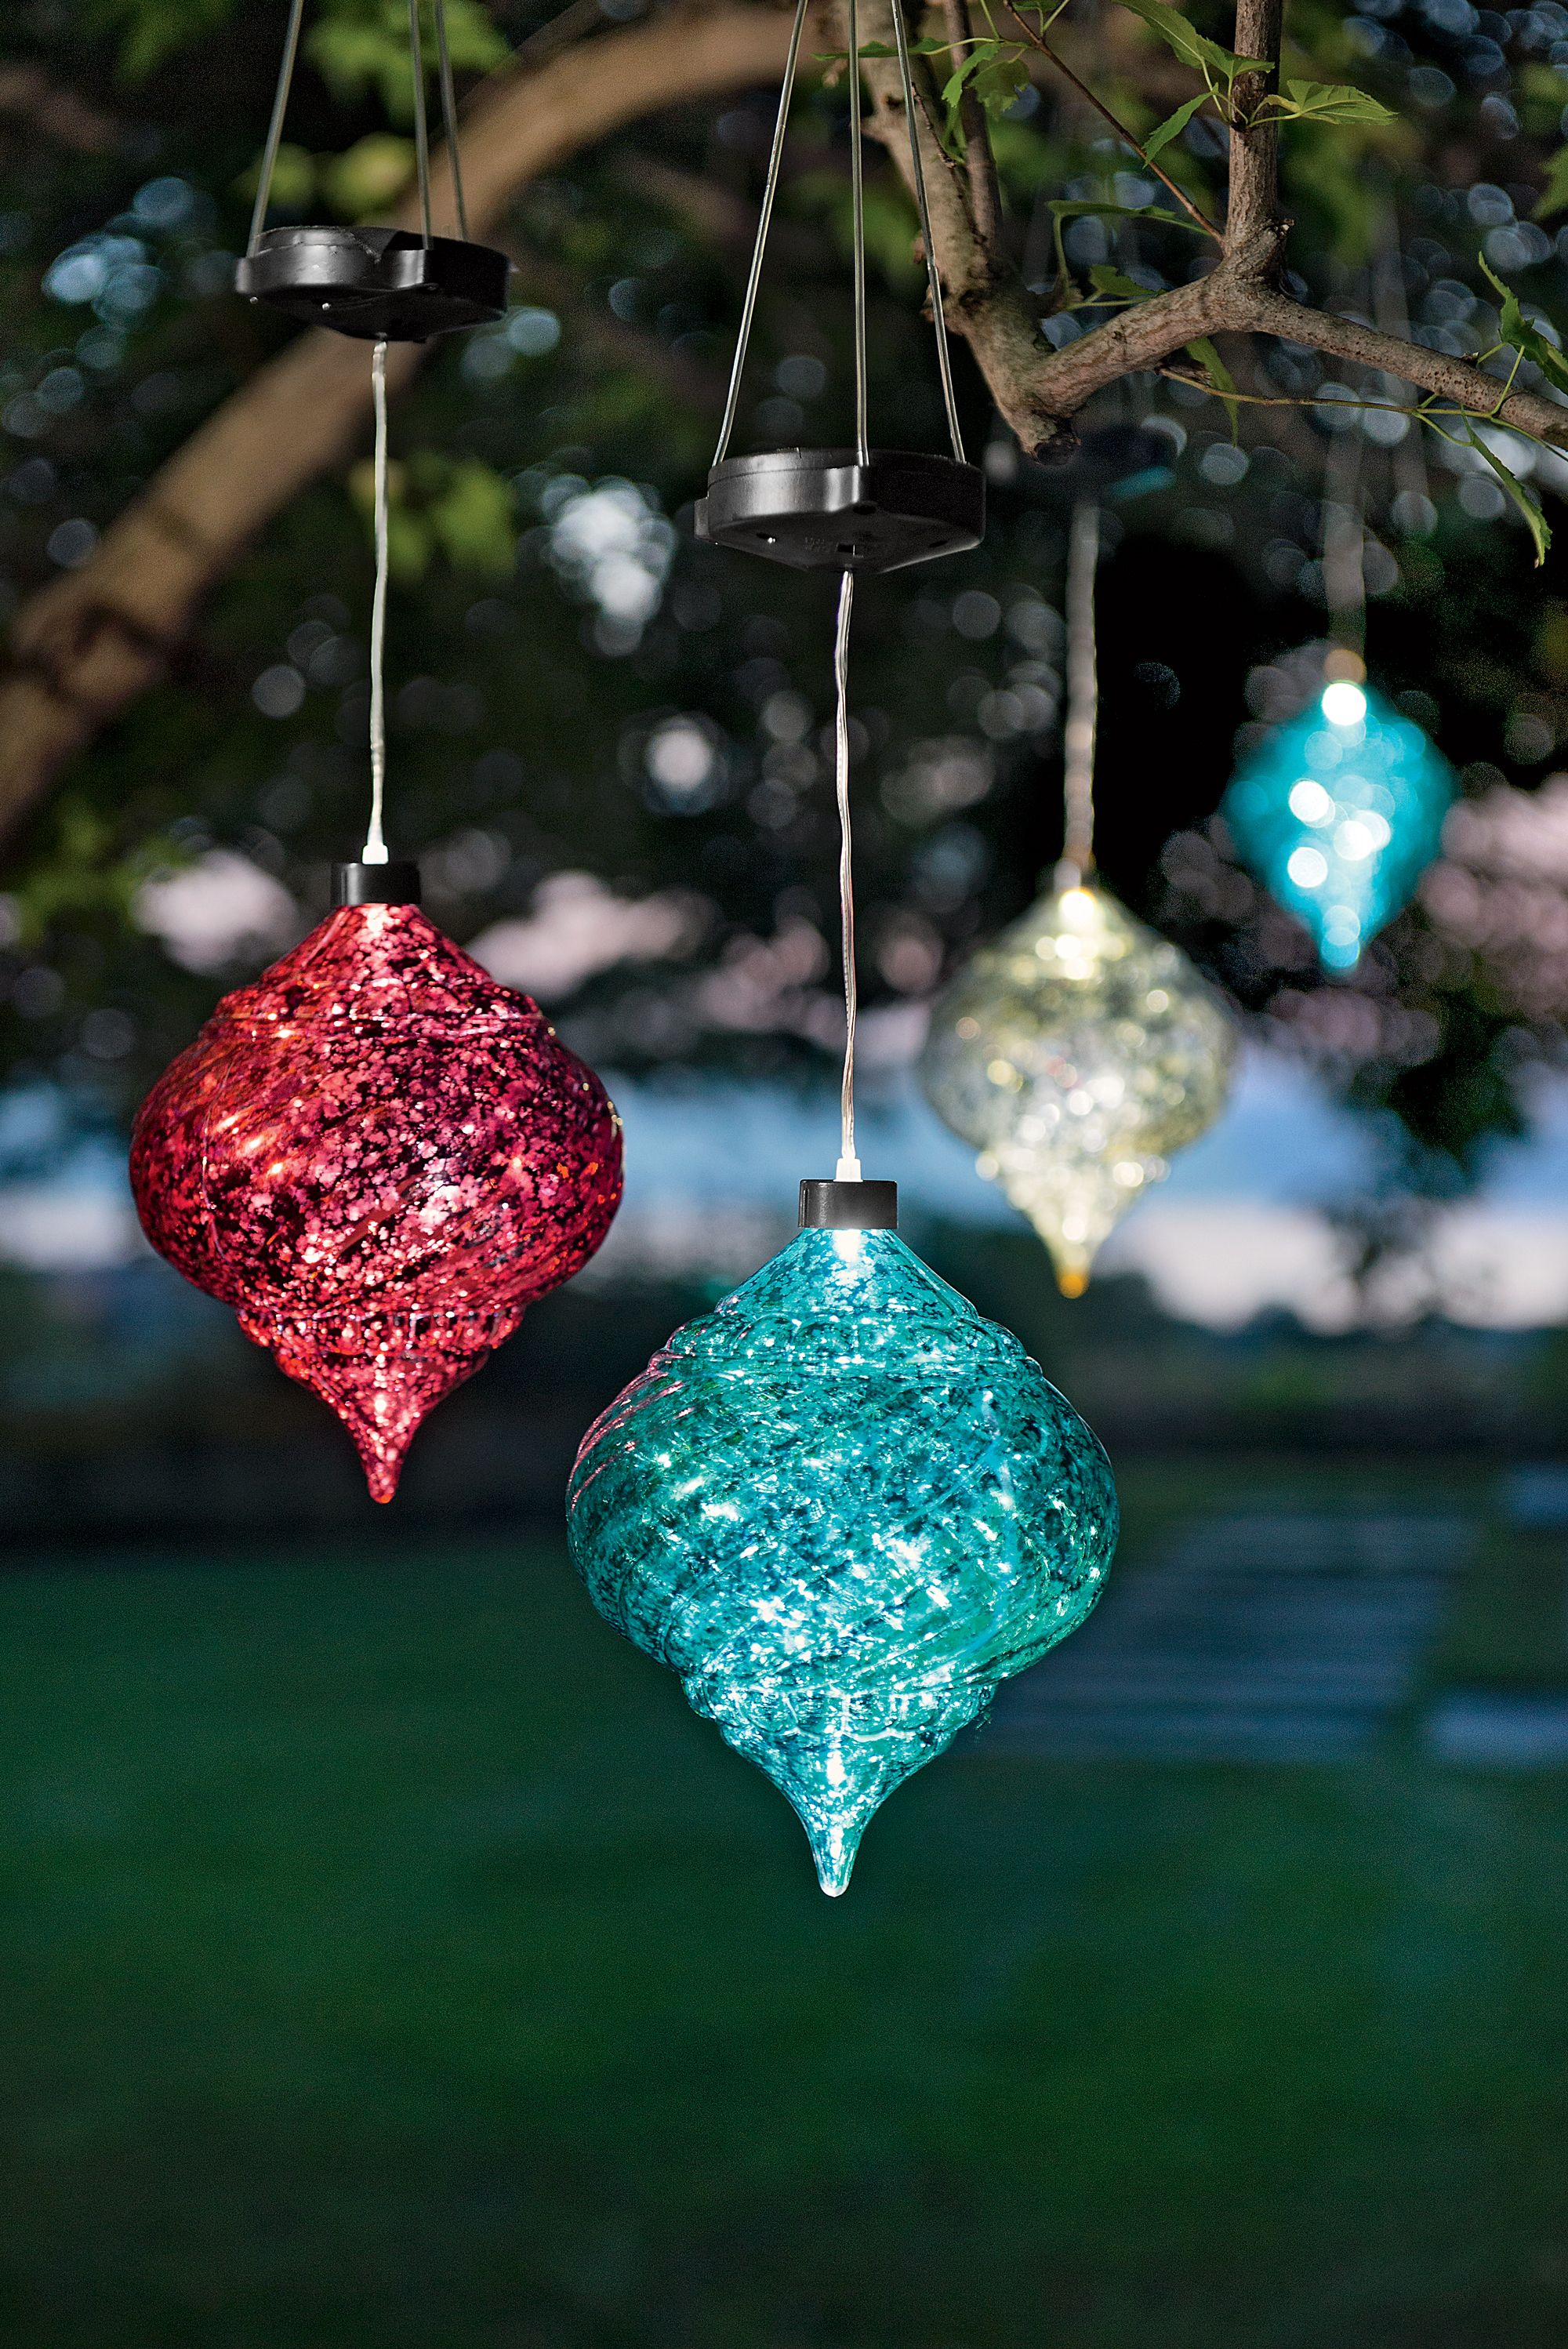 Large Outdoor Christmas Ornaments Hanging Onion Solar Ornament Large Christmas Ornaments Large Outdoor Christmas Ornaments Large Christmas Decorations